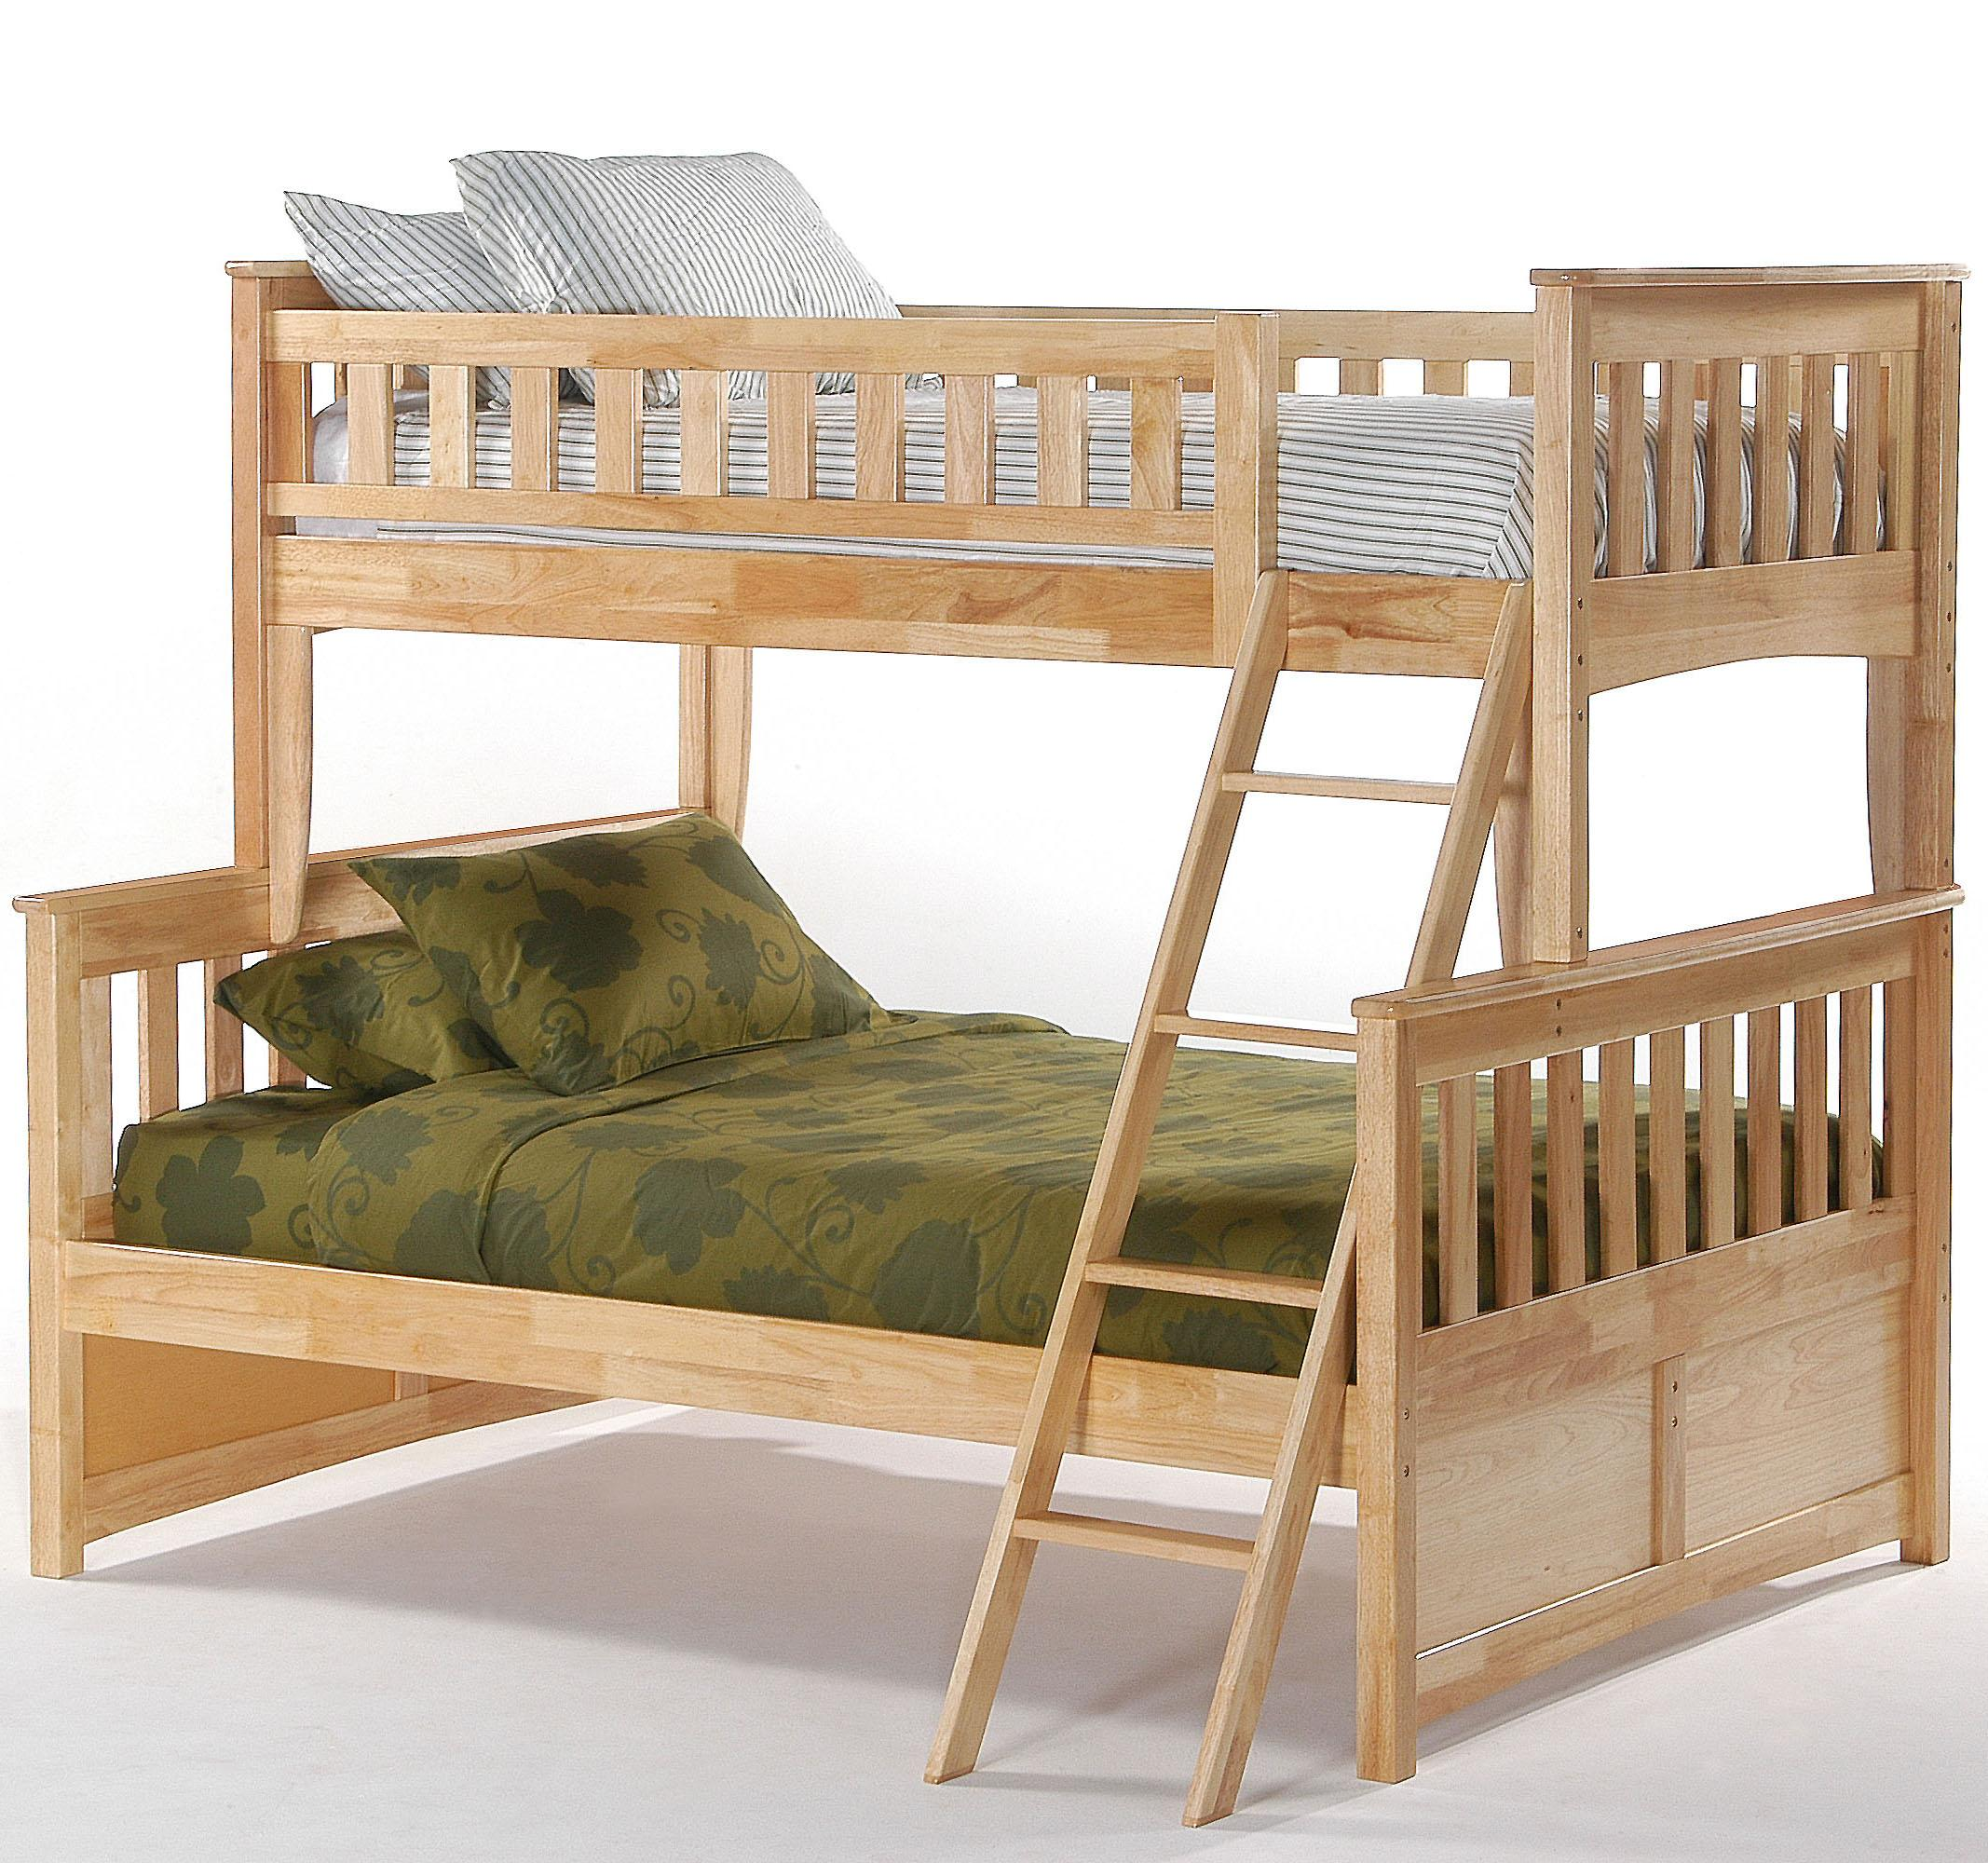 4 Day Furniture: Night & Day Furniture Spice Ginger Twin/Full Bunk Bed